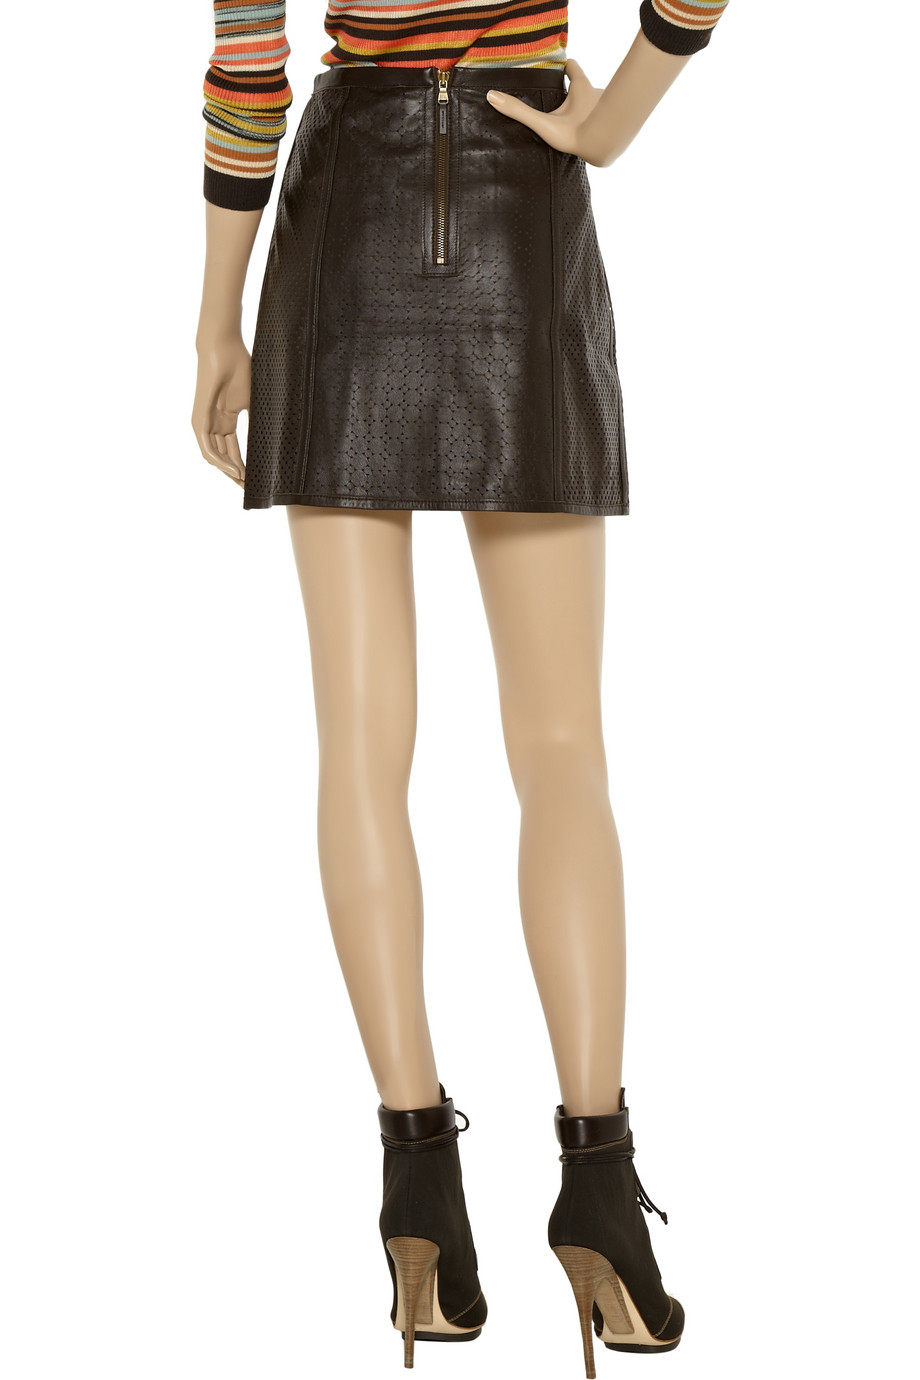 tibi perforated leather skirt in brown lyst